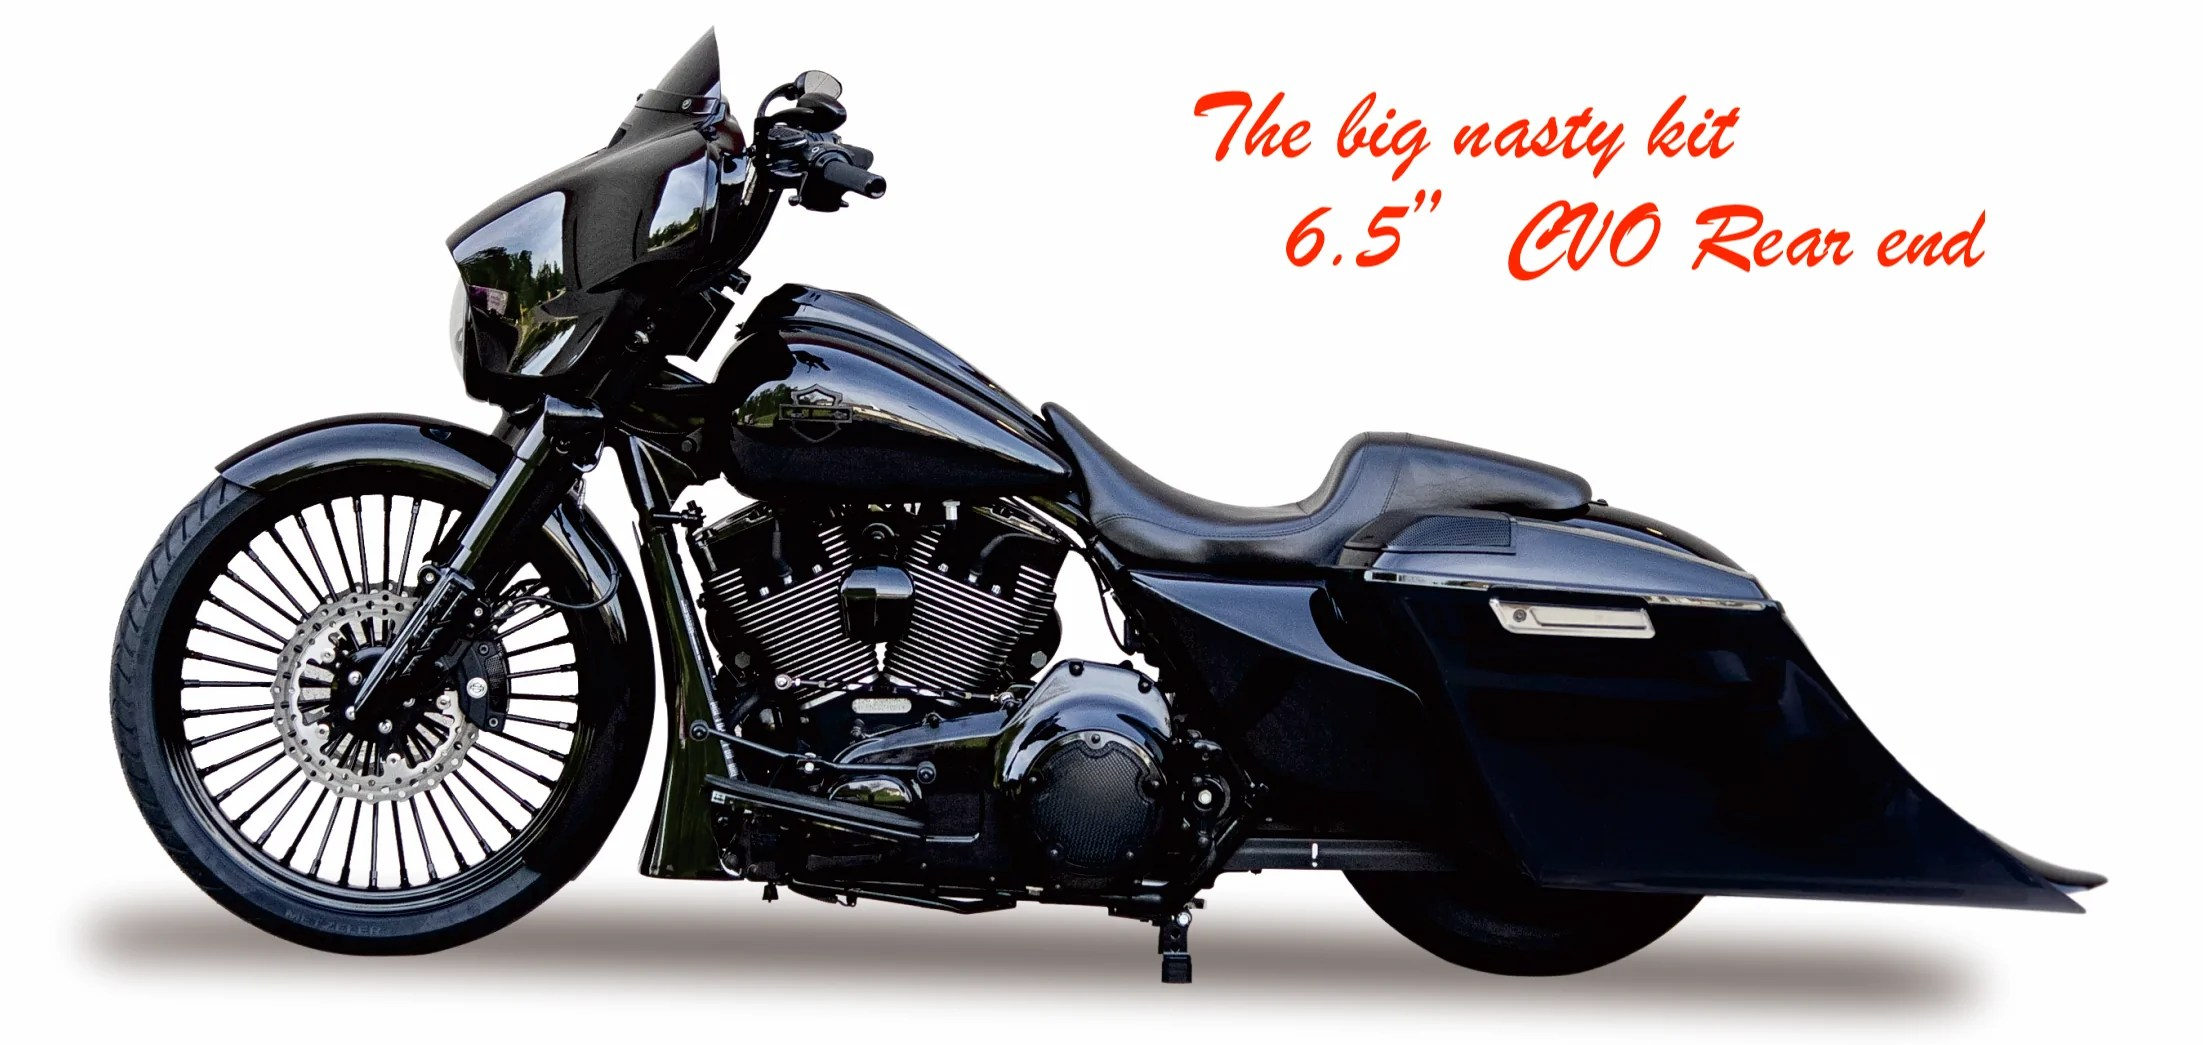 hight resolution of  big nasty cvo style rear fender saddlebags for 2014 2019 harley touring models come with color matched